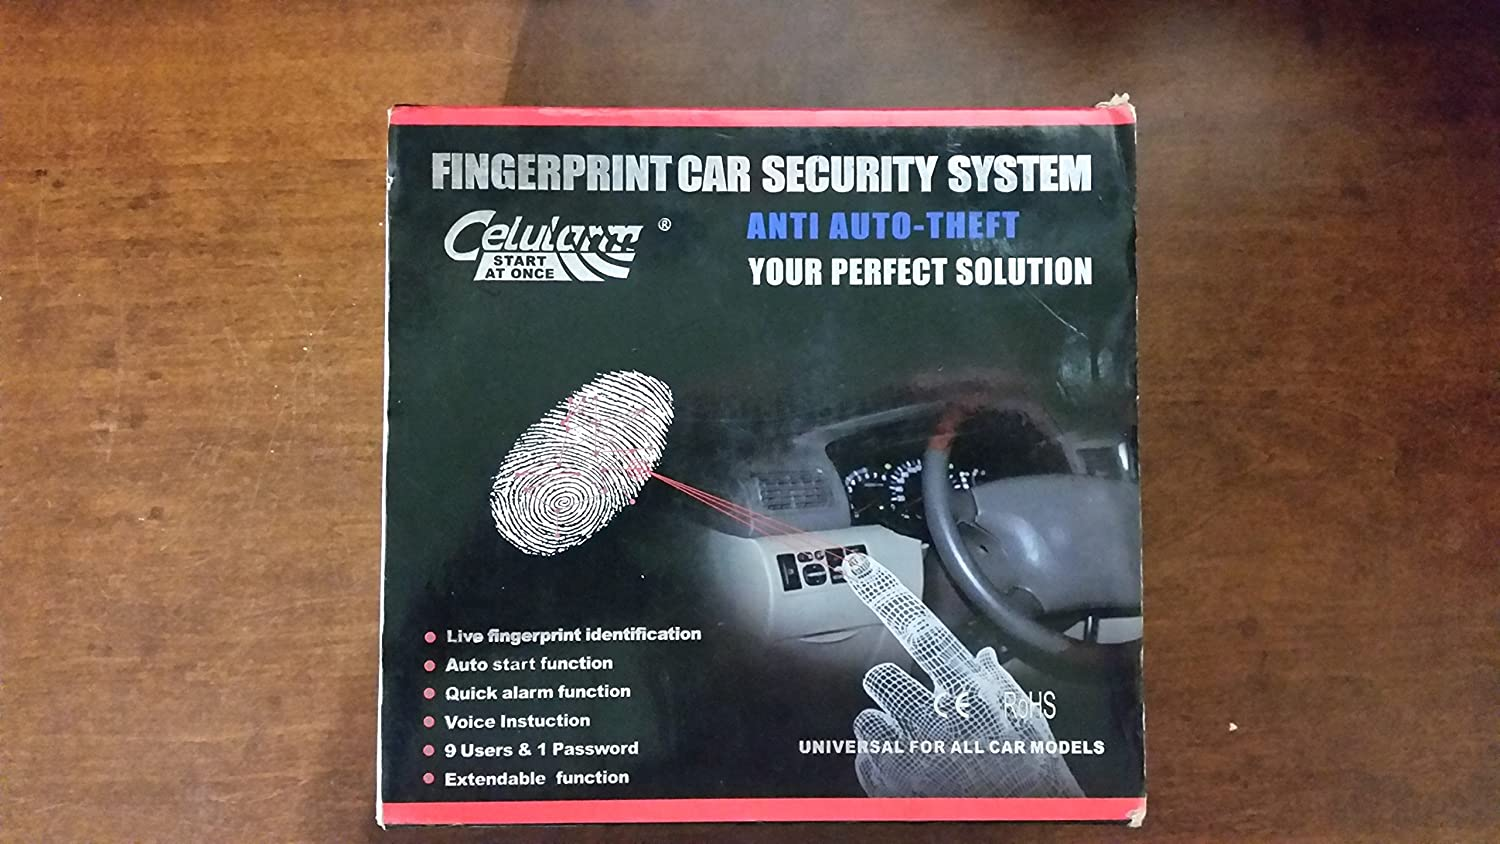 Biometric Security Fingerprint Car Starter Alarm Car